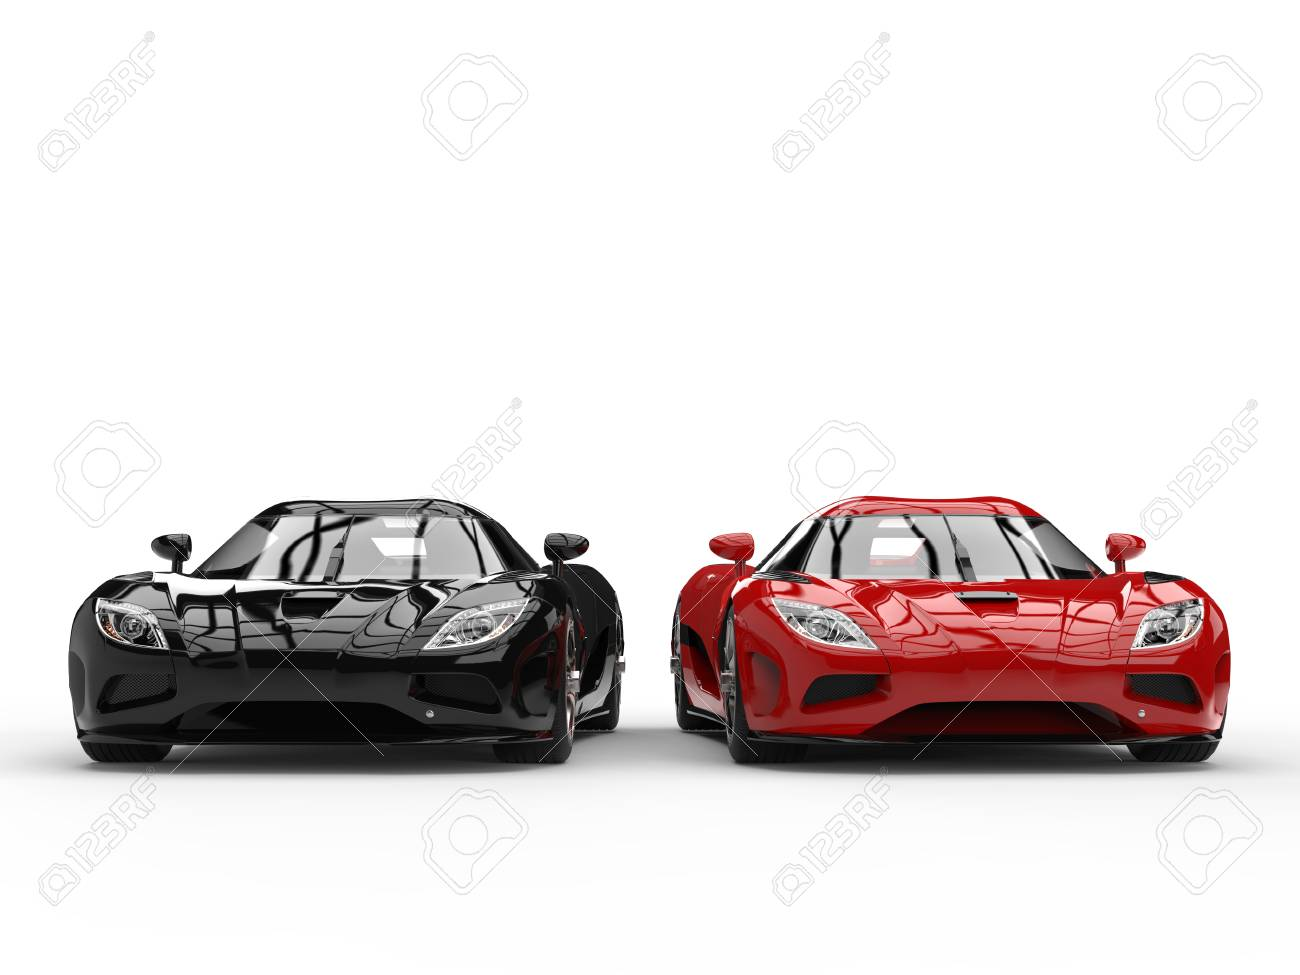 Shiny New Black And Red Sport Concept Cars Side By Side Front Stock Photo Picture And Royalty Free Image Image 80618325